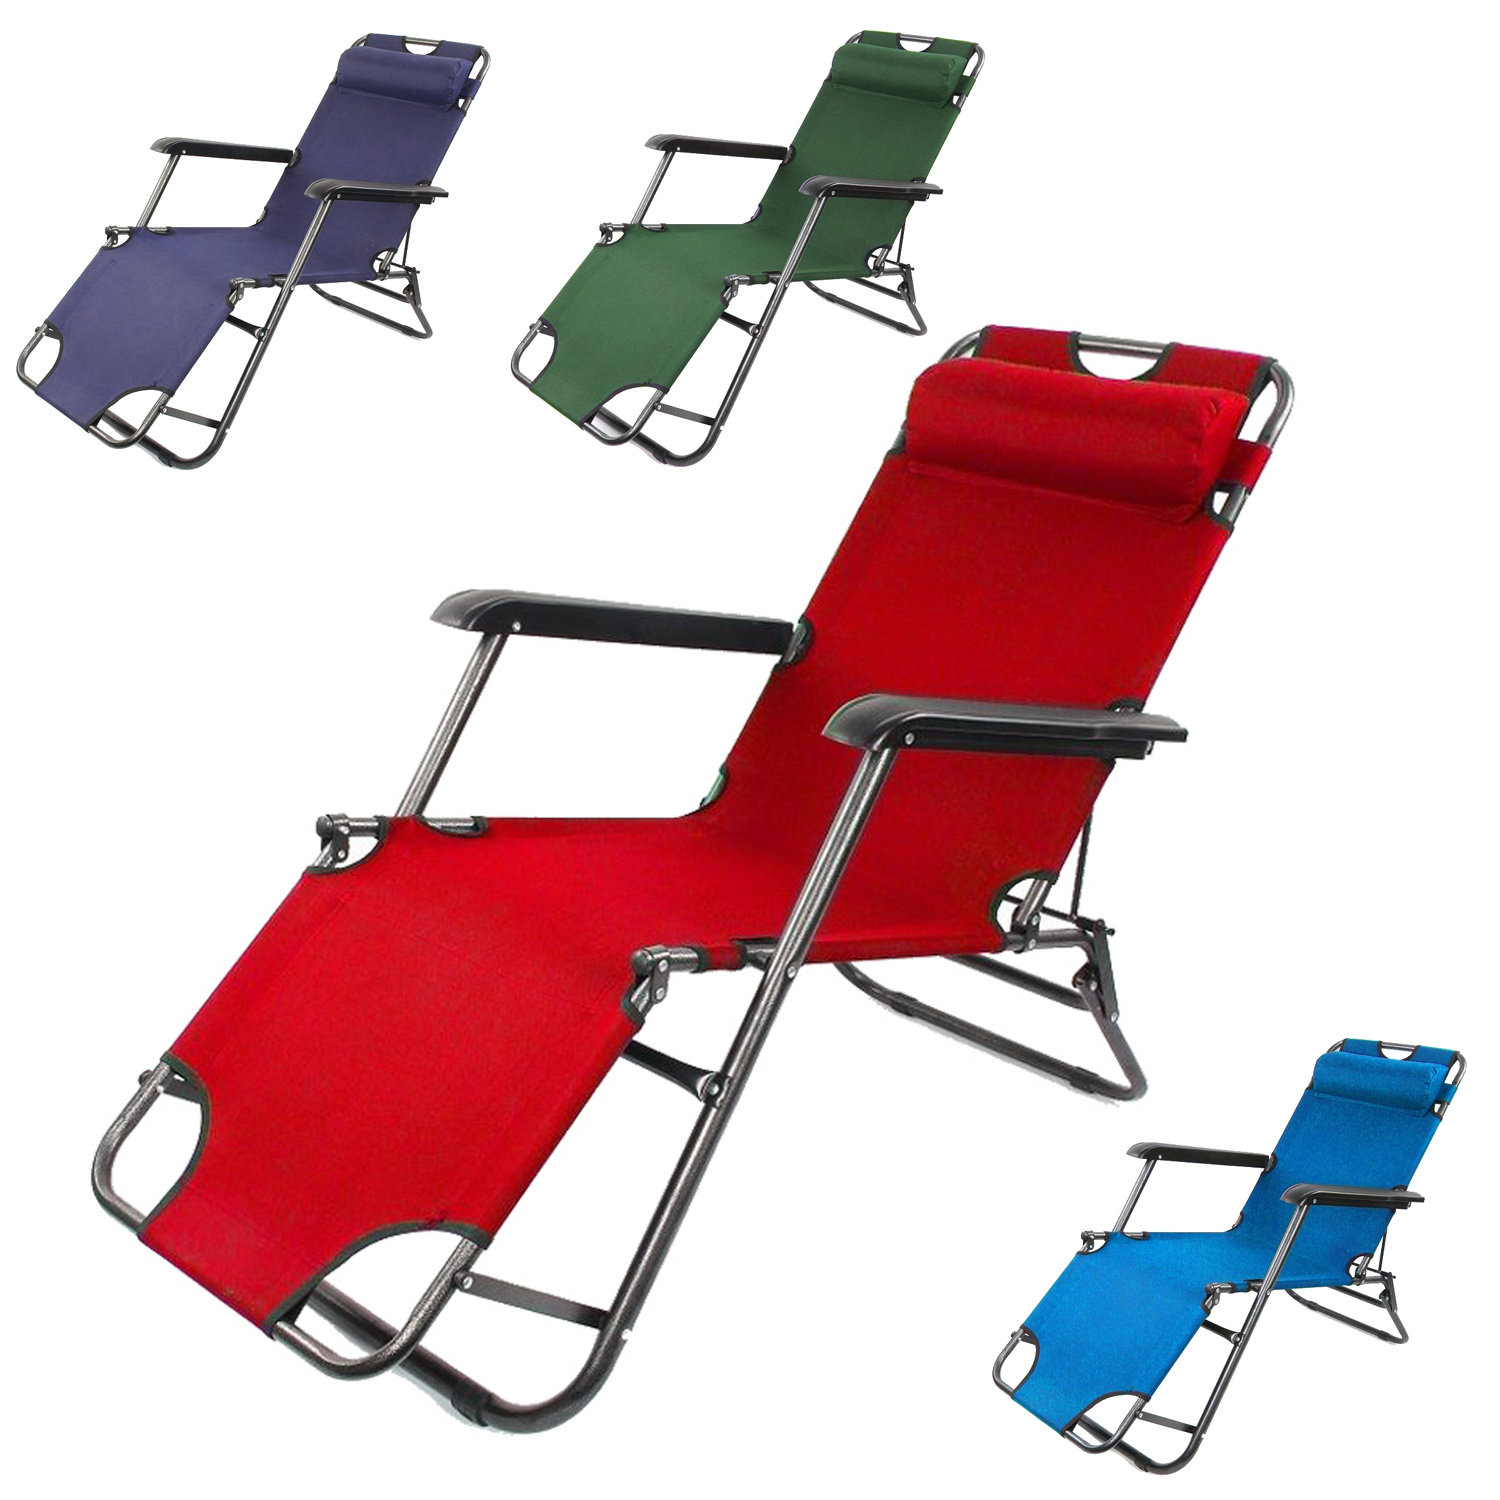 Lightweight Folding Beach Lounge Chair 2x Folding Reclining Garden Chair Sun Lounger Deck Camping